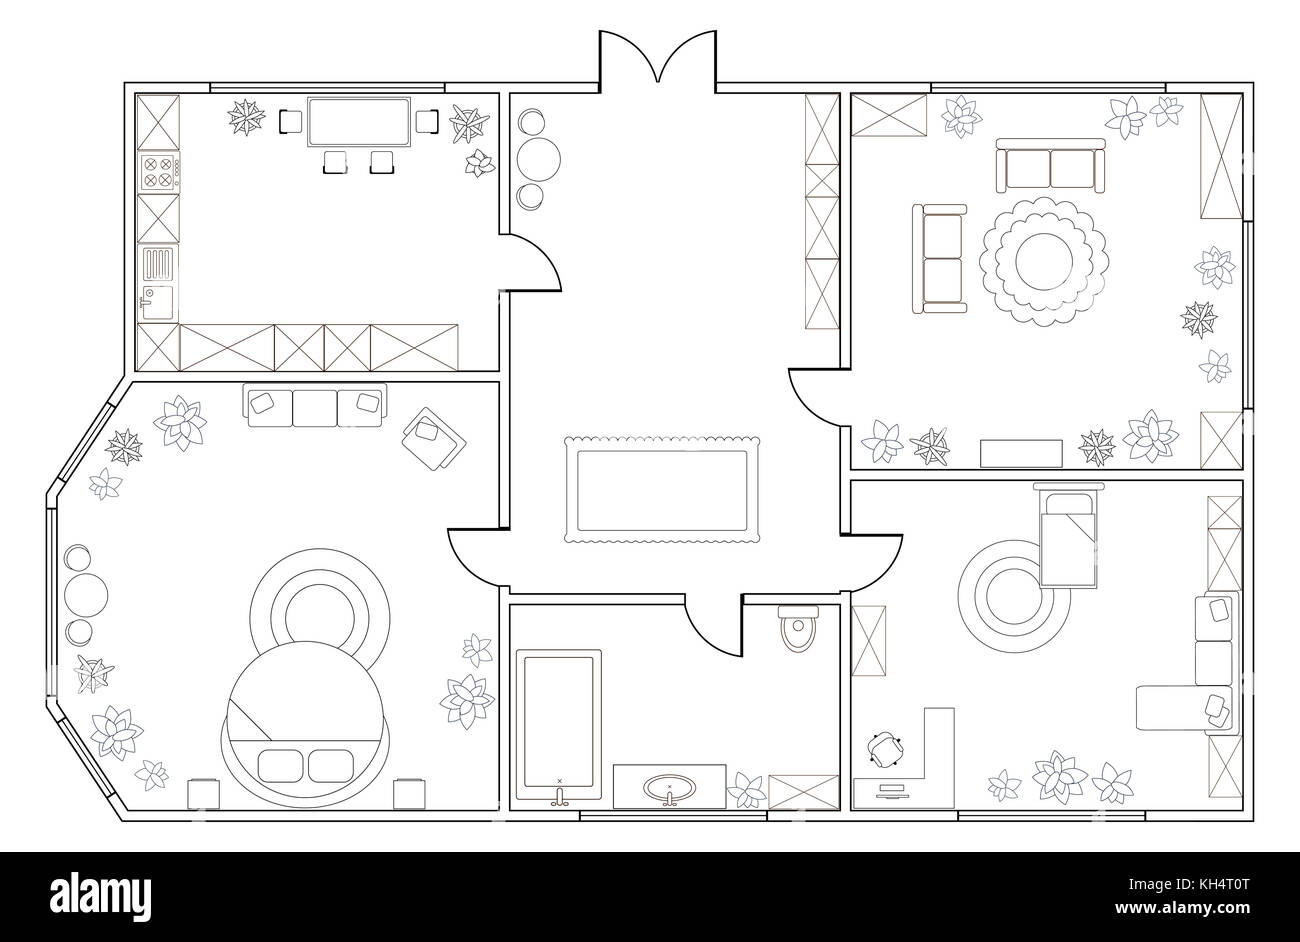 Plan D'appartement Abstract Vector Plan D Appartement De Deux Chambres à Coucher